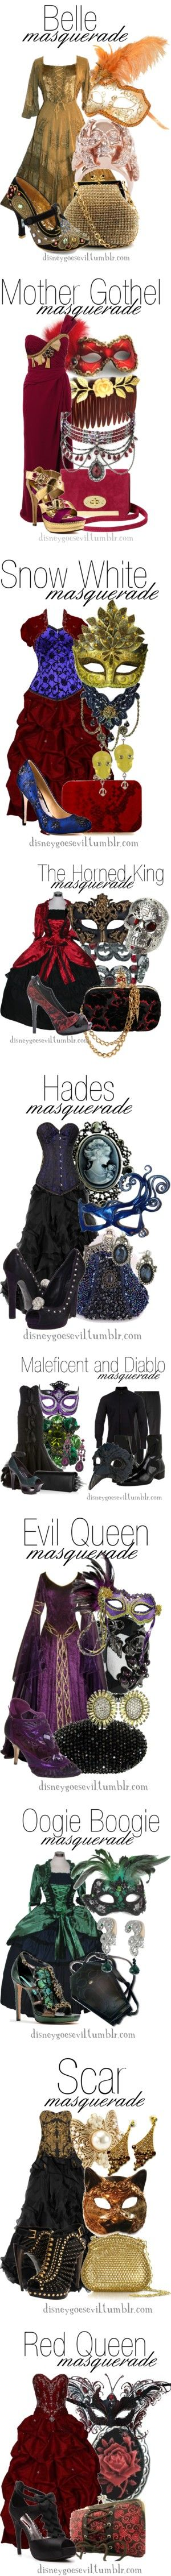 """Disney Villains Masquerade"" by disney-villains ❤ liked on Polyvore"